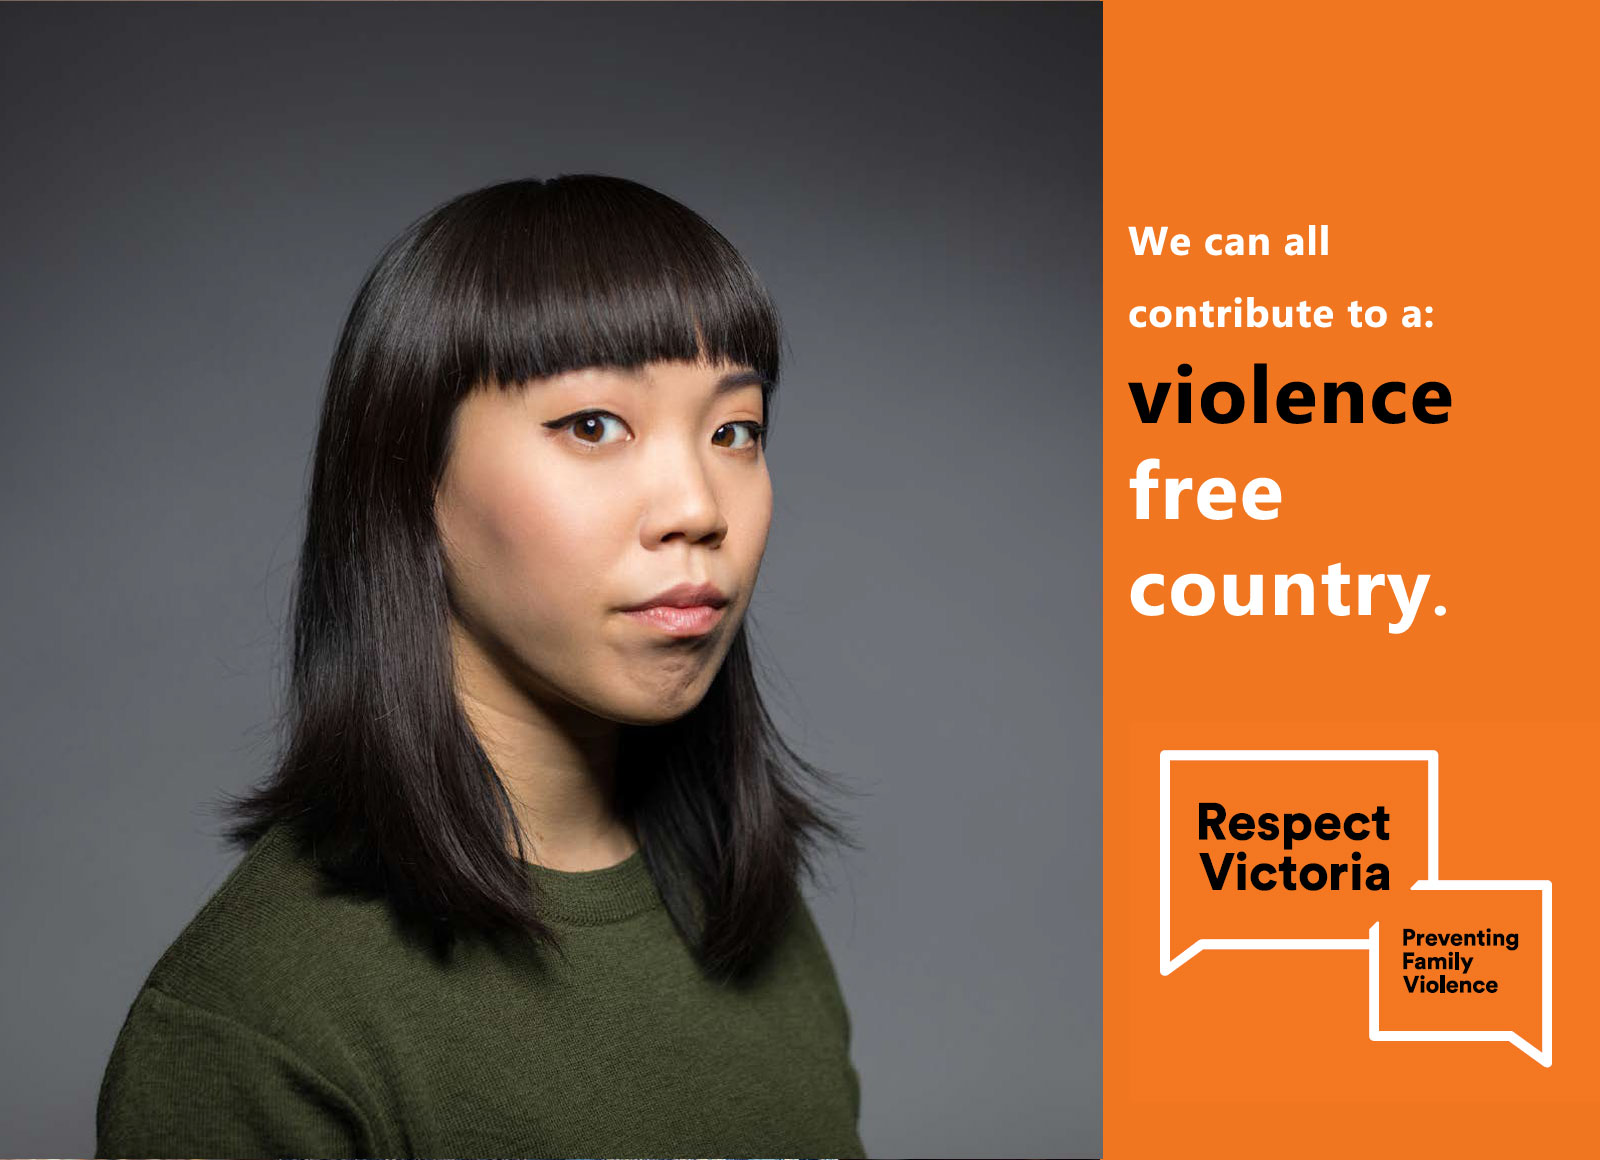 Respect Victoria campaign against gender based violence